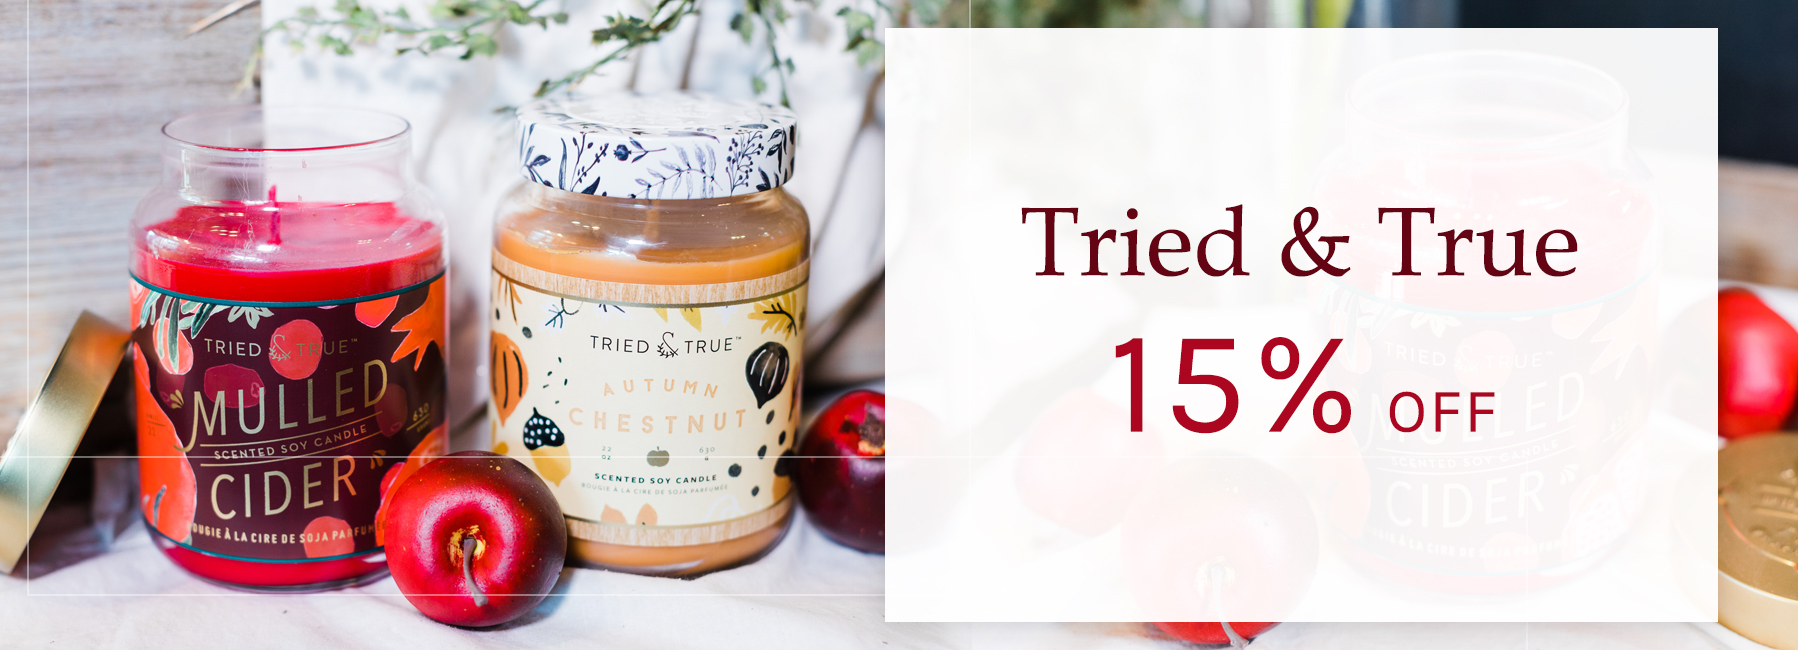 Tried and True - 15 Percent OFF